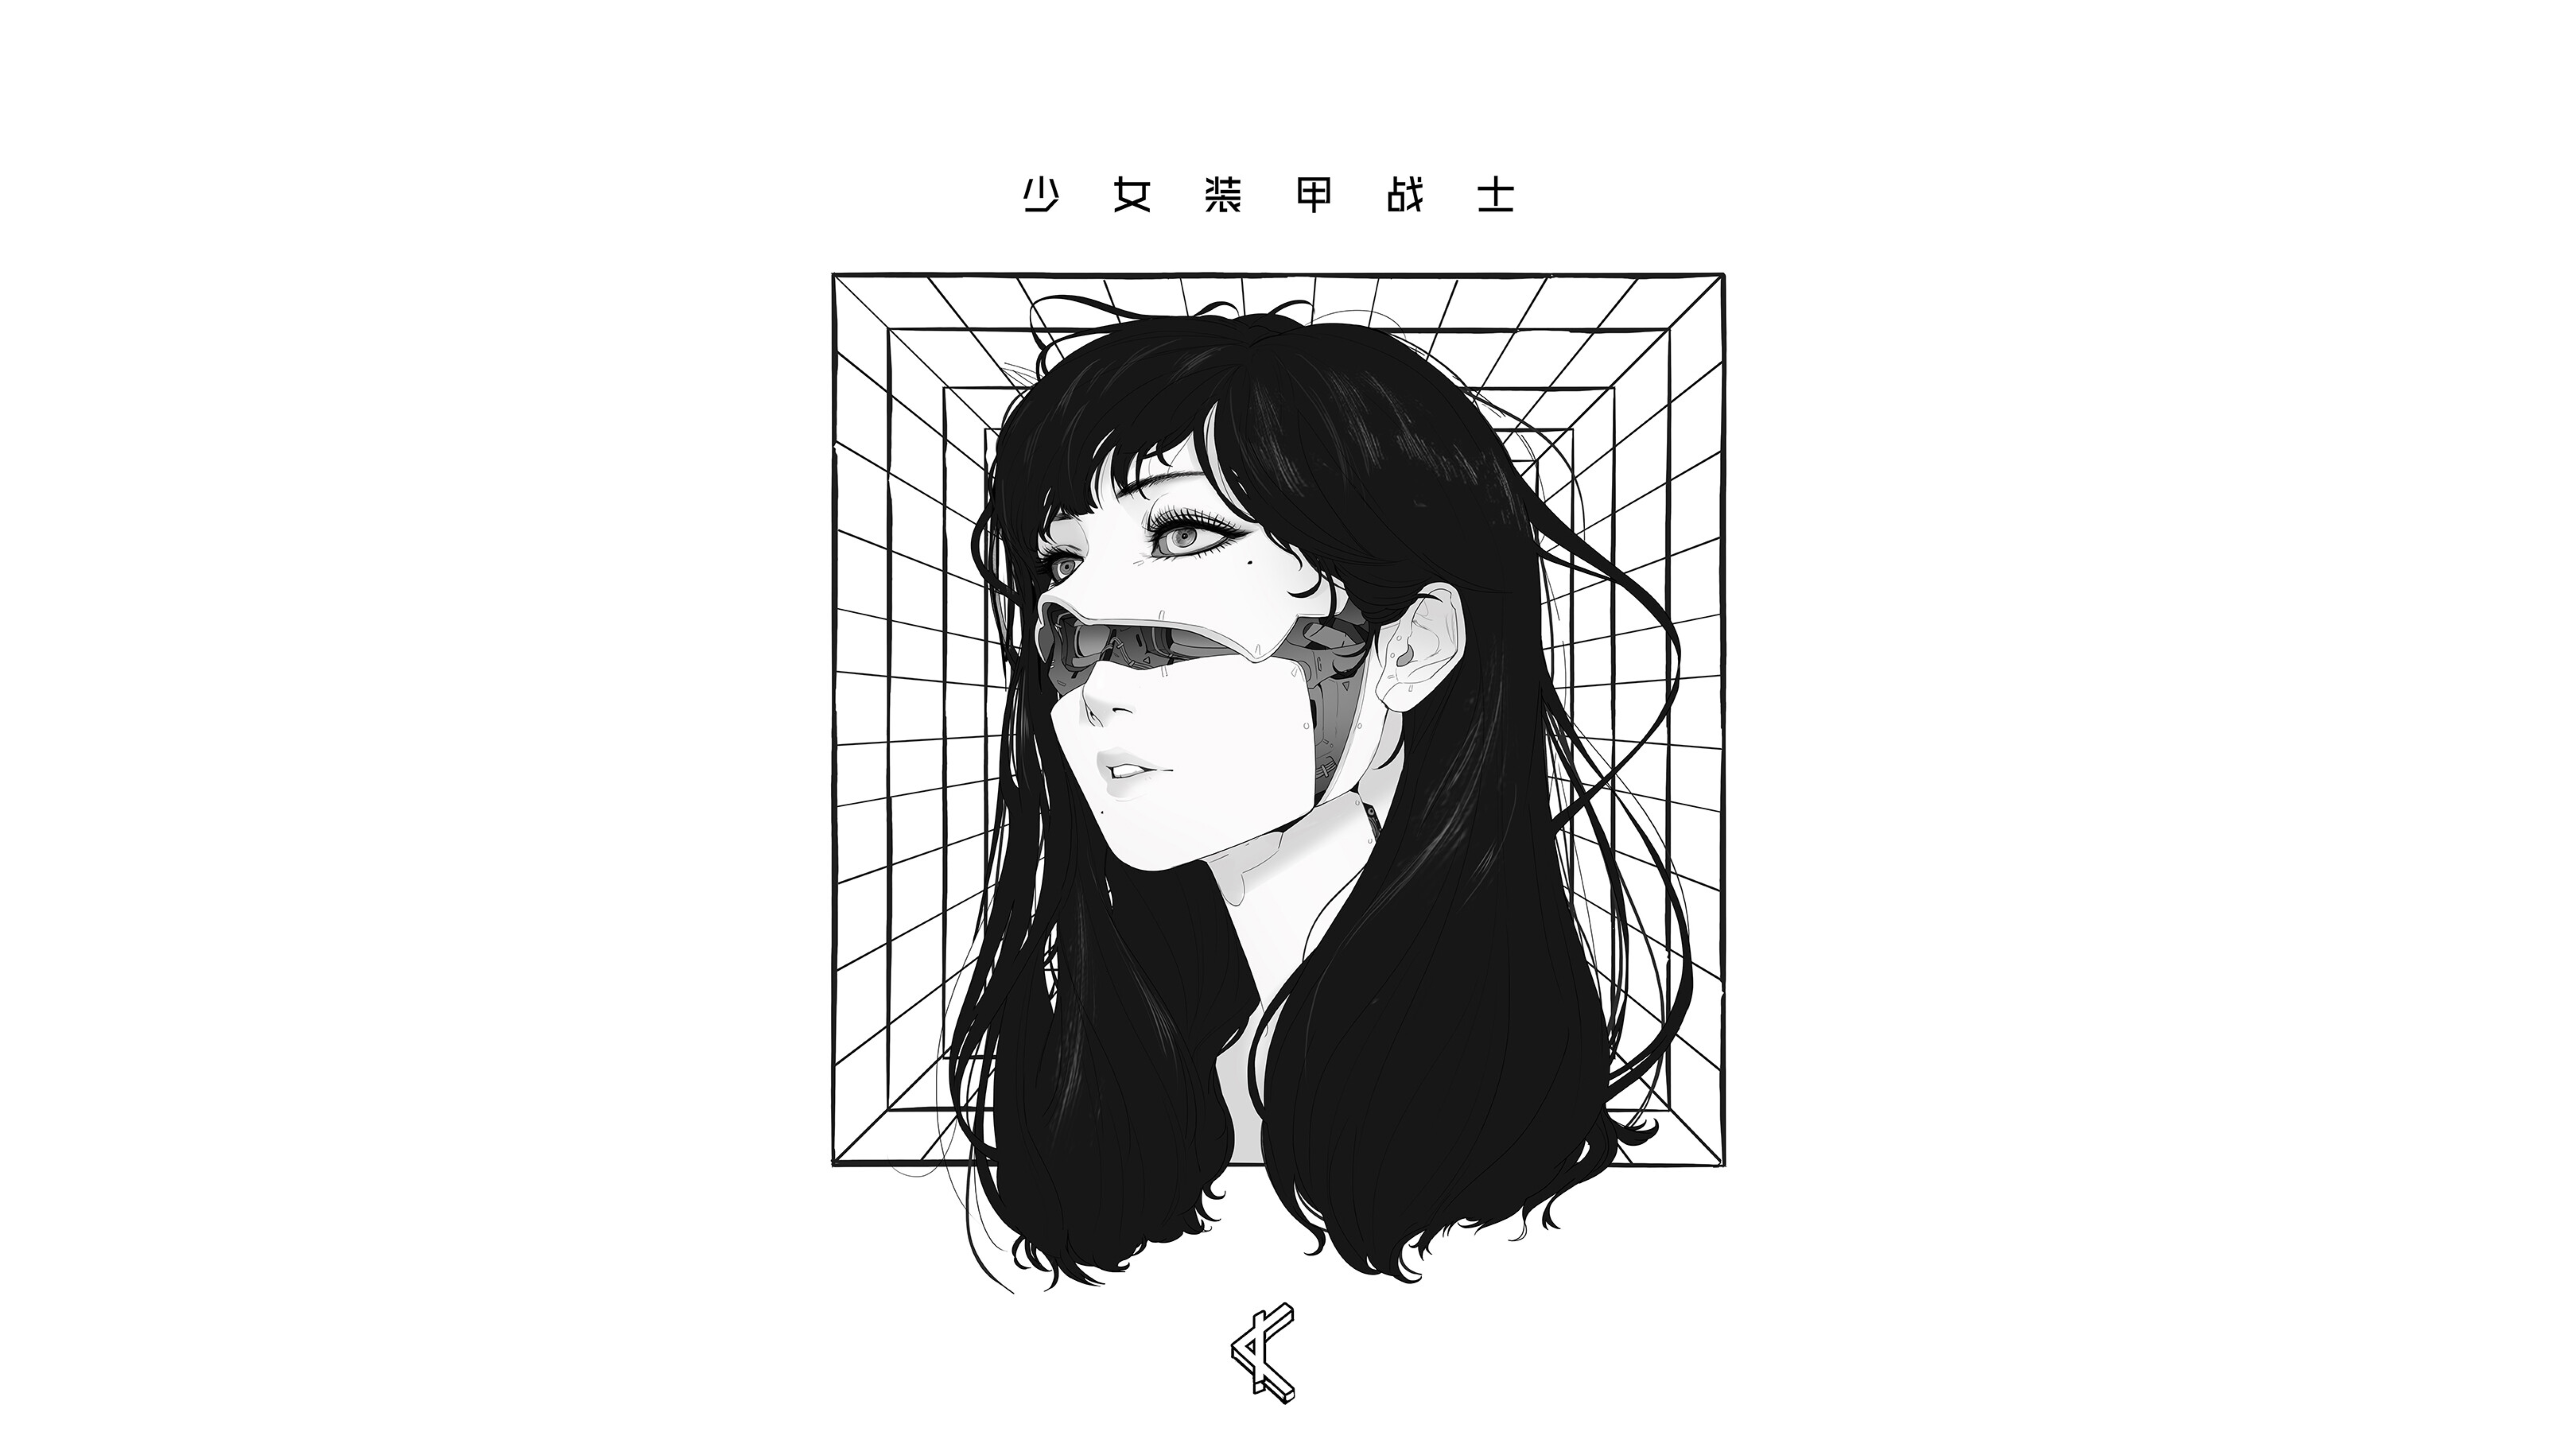 Anime 2560x1440 Park JunKyu women cyborg futuristic cyberpunk black hair face looking away artwork drawing white background simple background minimalism digital art science fiction monochrome fantasy girl